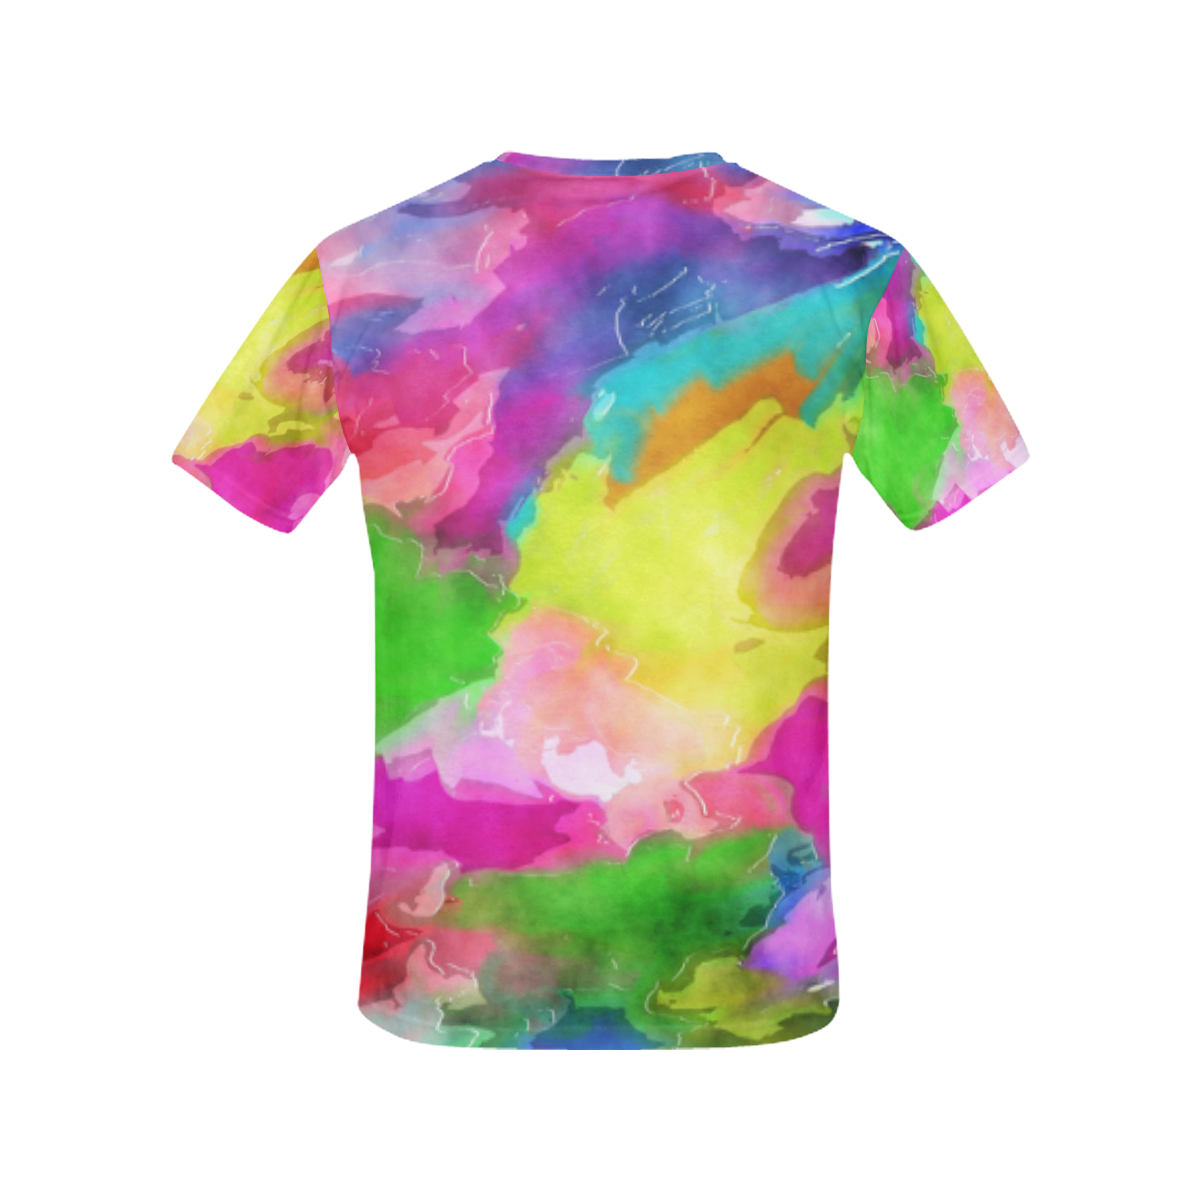 Vibrant Watercolor Ink Blend All Over Print T-Shirt for Women (USA Size) (Model T40)